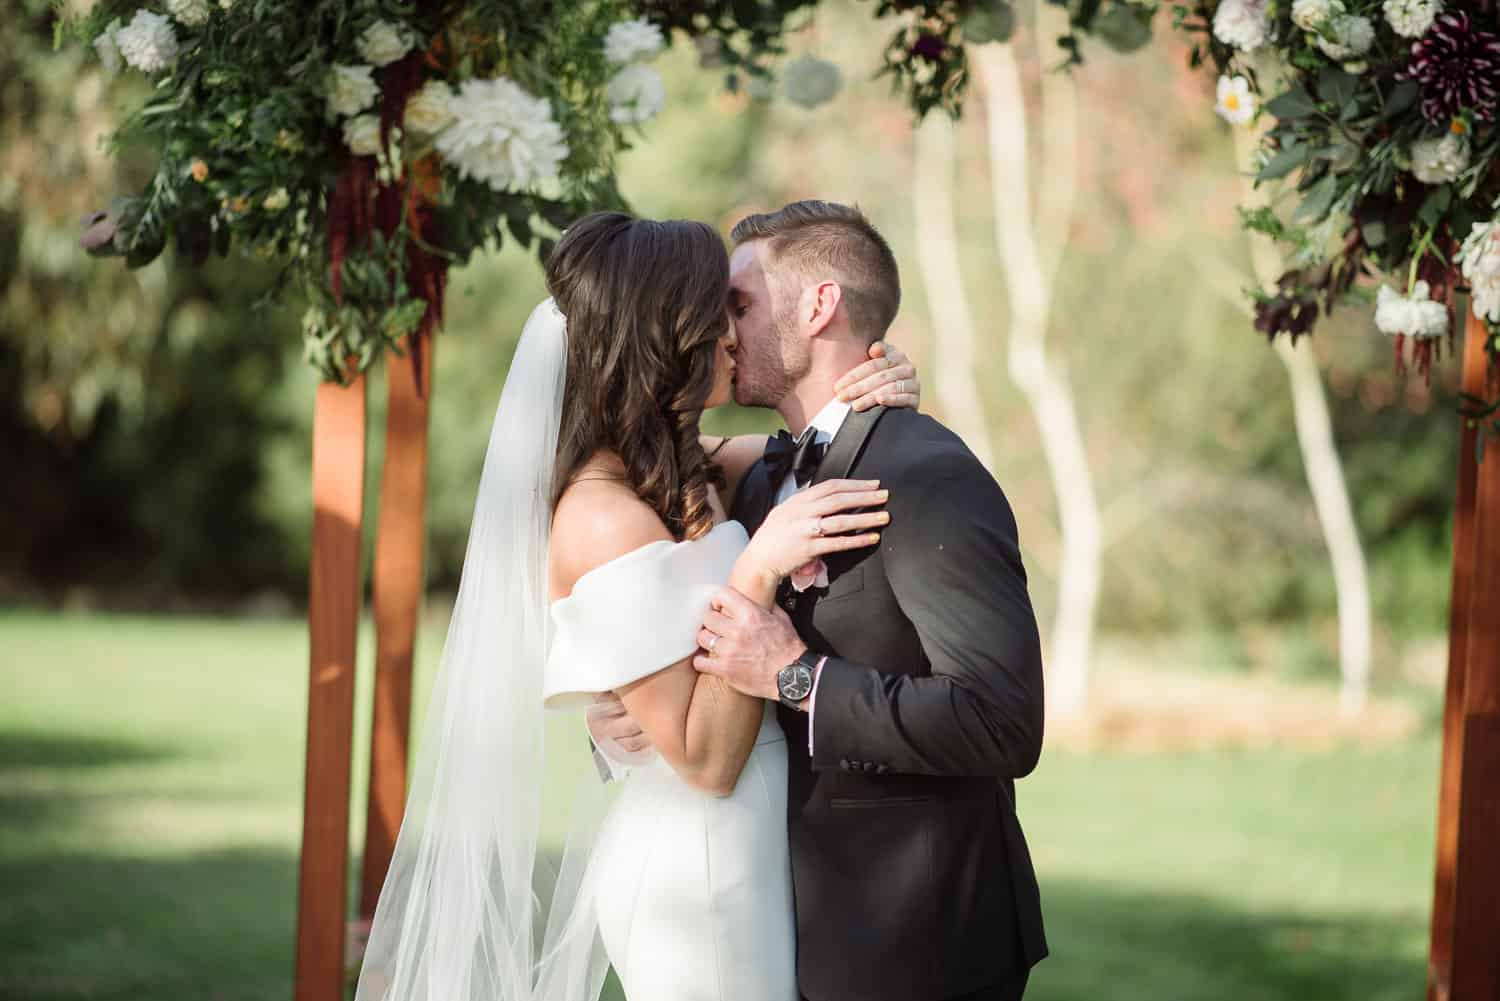 First kiss at a hamilton backyard wedding